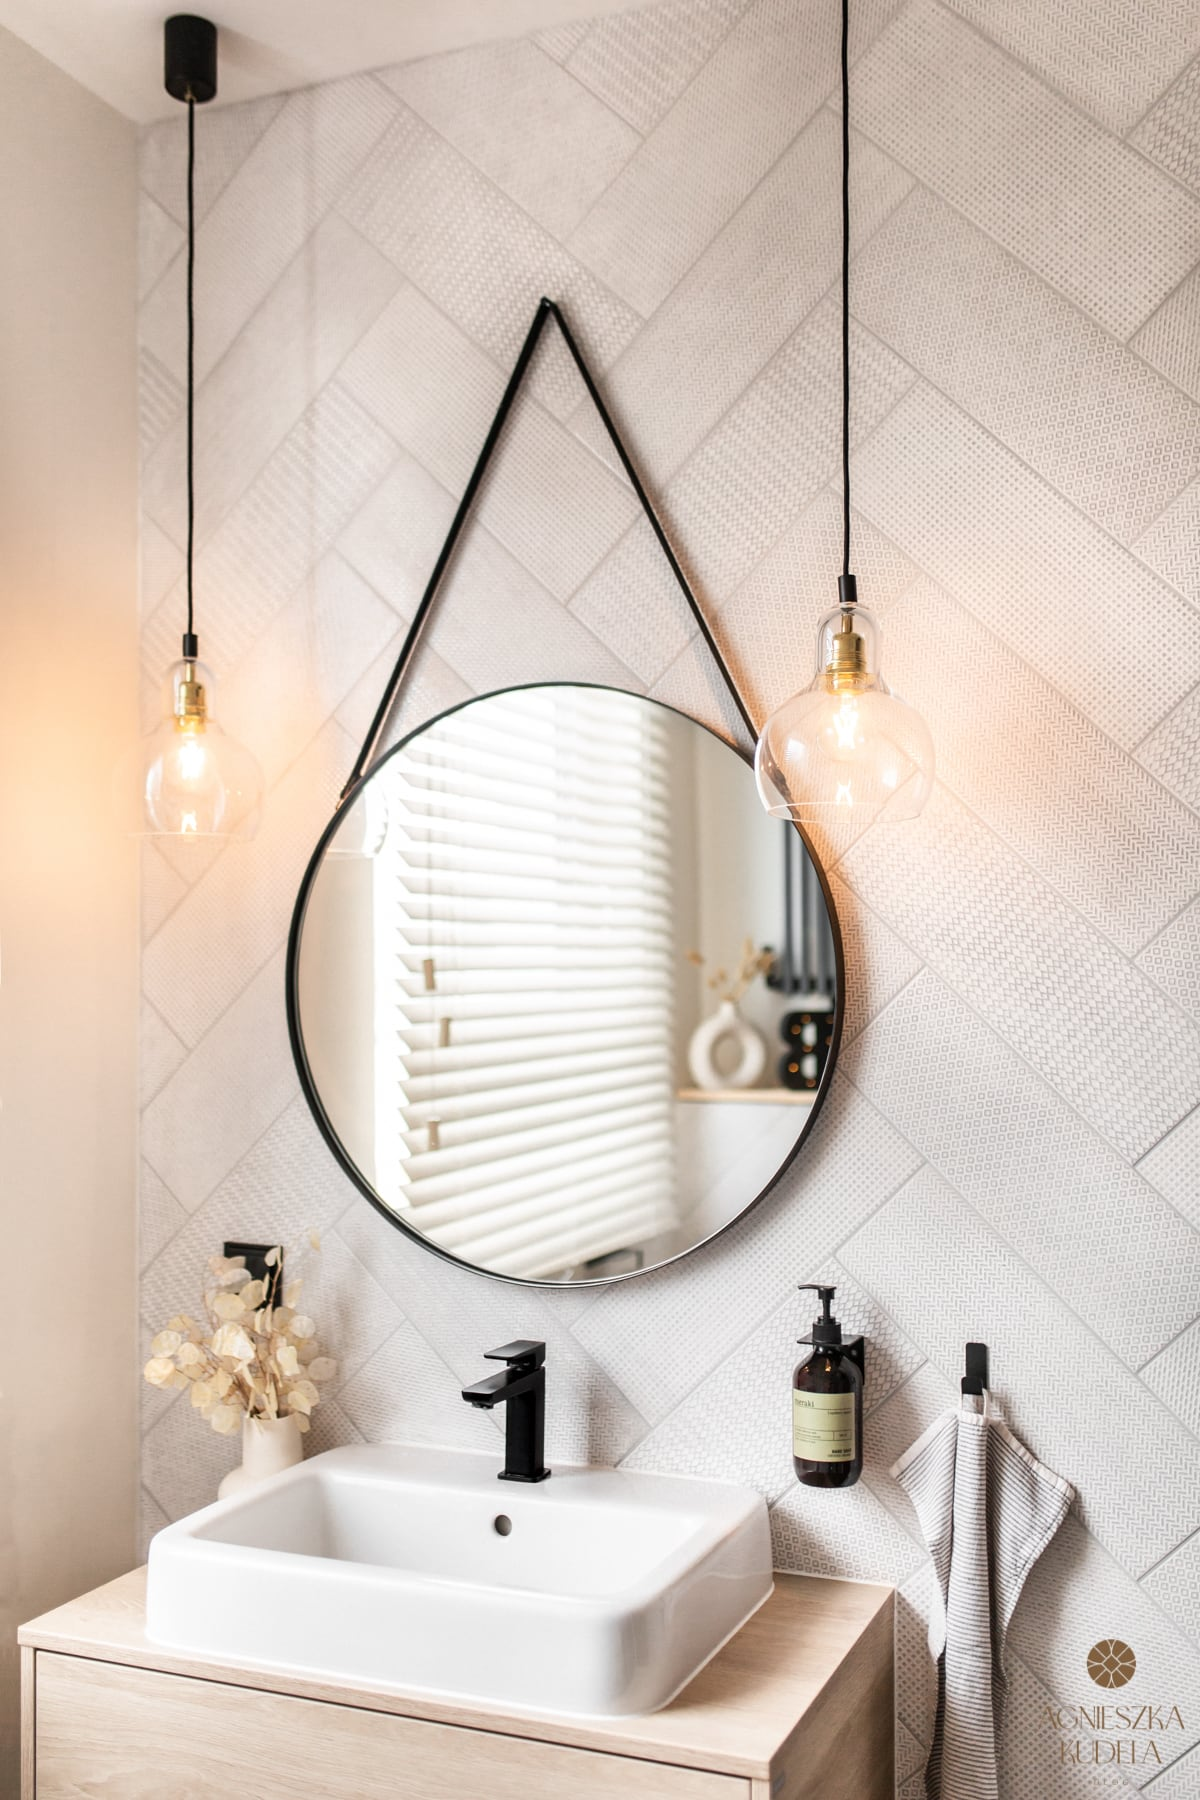 bathroom in a loft style with black accessories